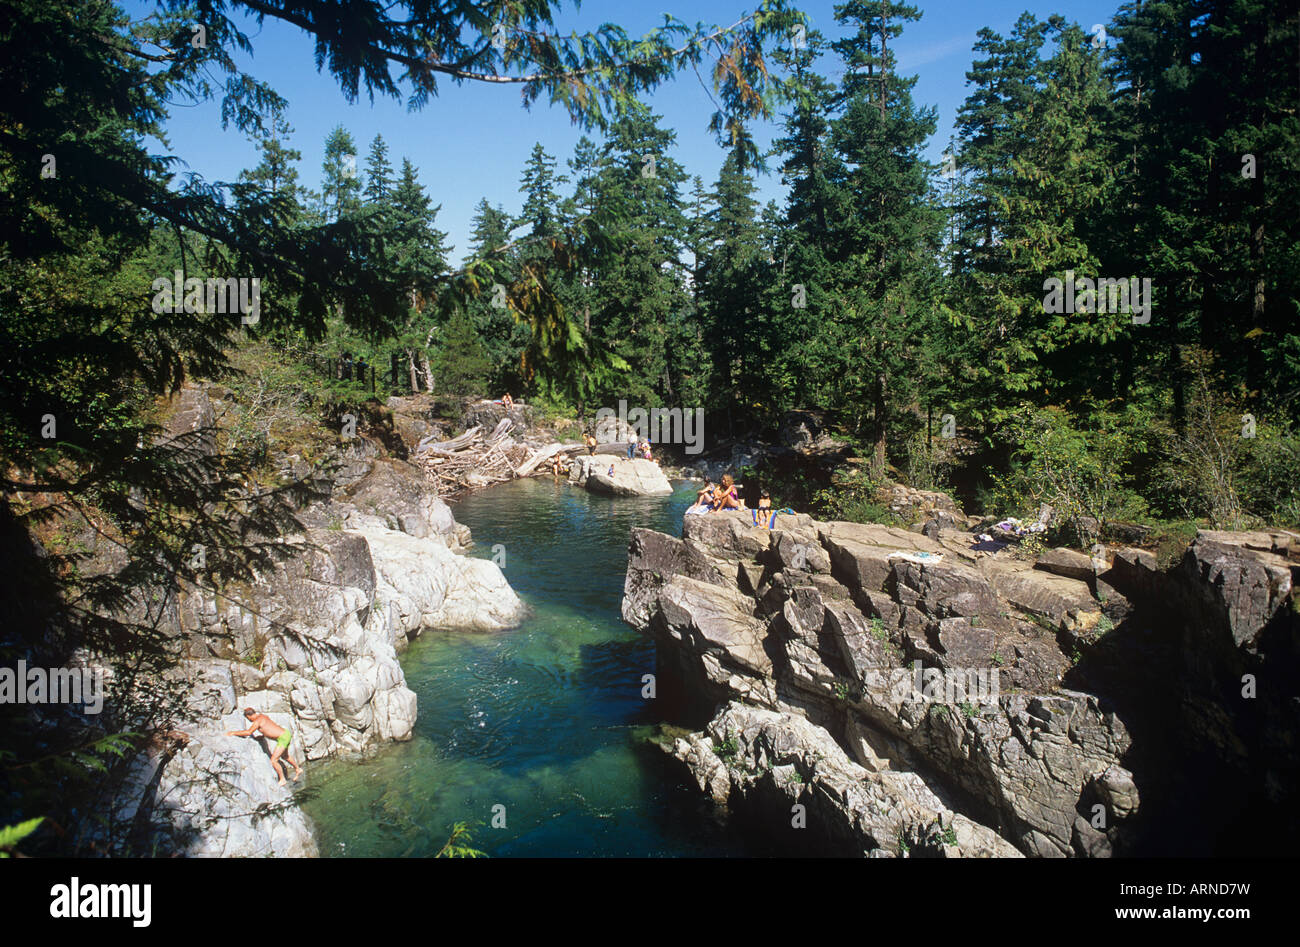 Little Qualicum River Provincial Park - people swimming in river, Vancouver Island, British Columbia, Canada. - Stock Image